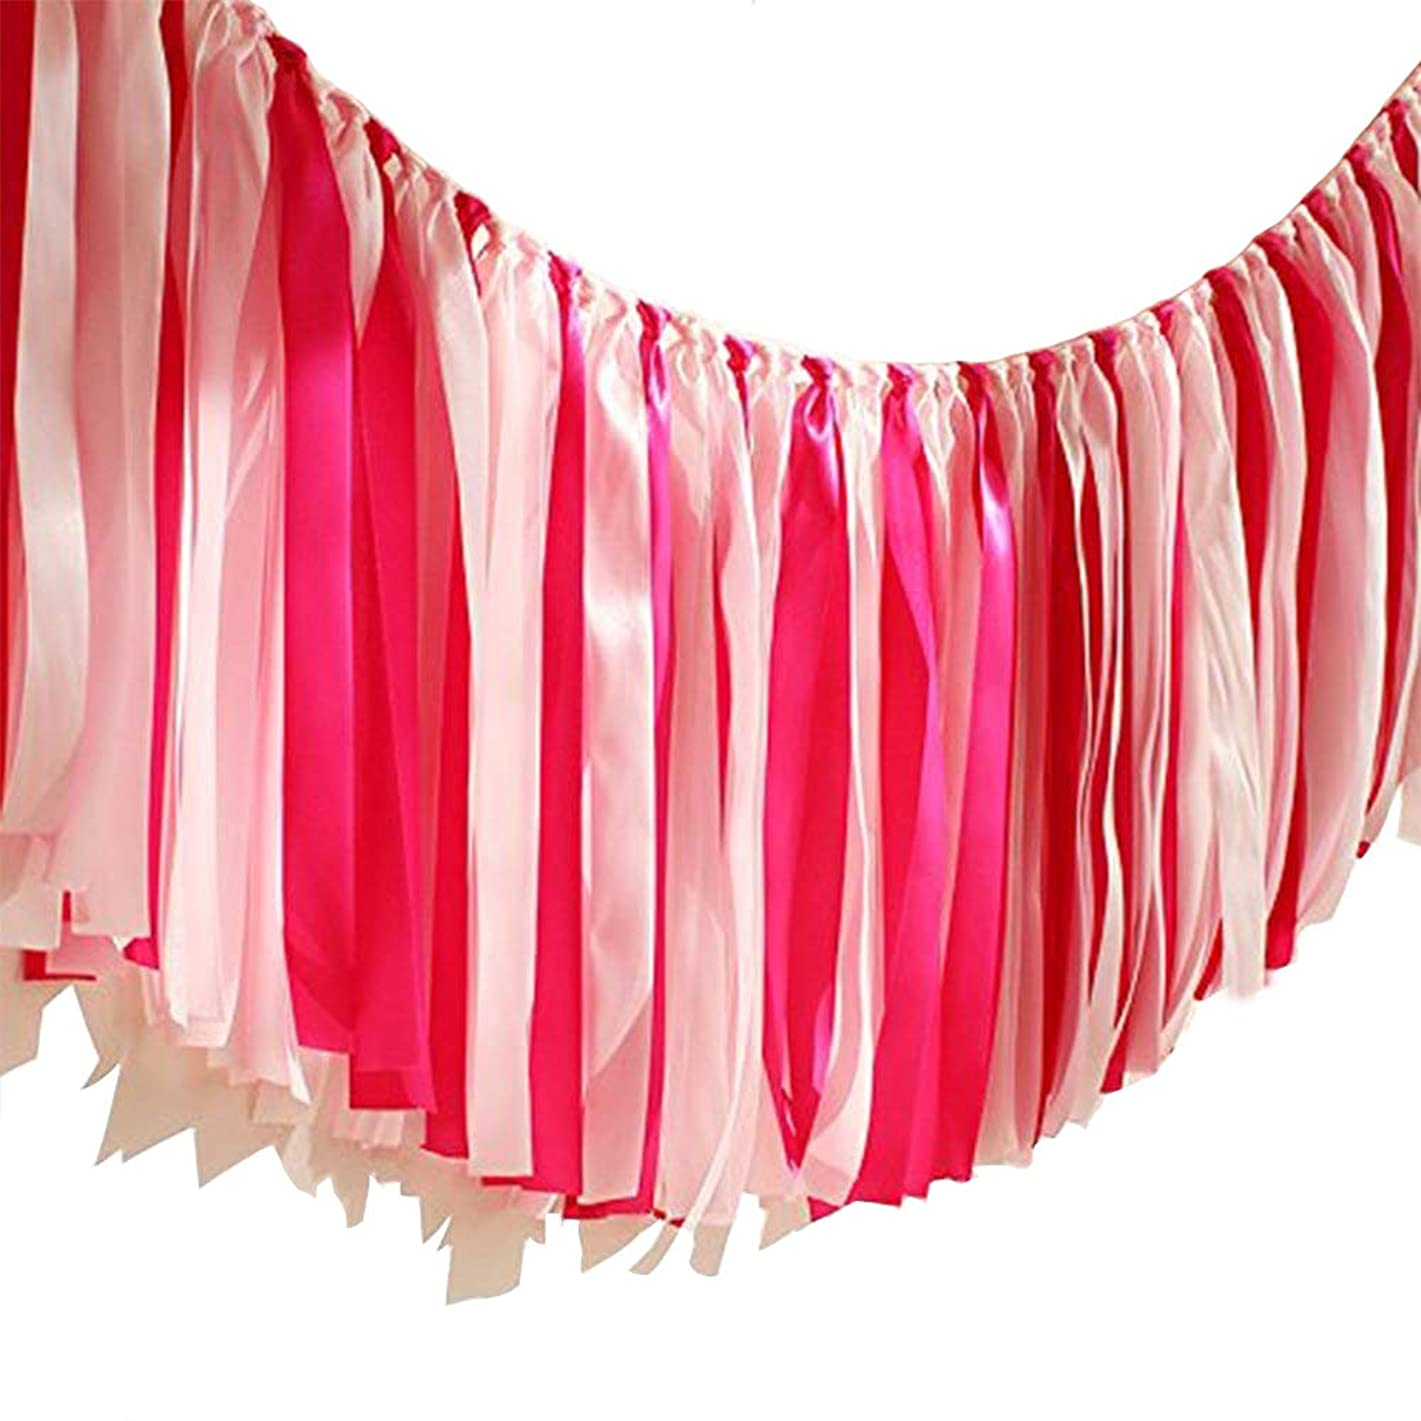 Handmade Colorful Ribbon Tassel Garland Already Assembled for Wedding Baby Shower Event Birthday Party Supplies Decoration 40